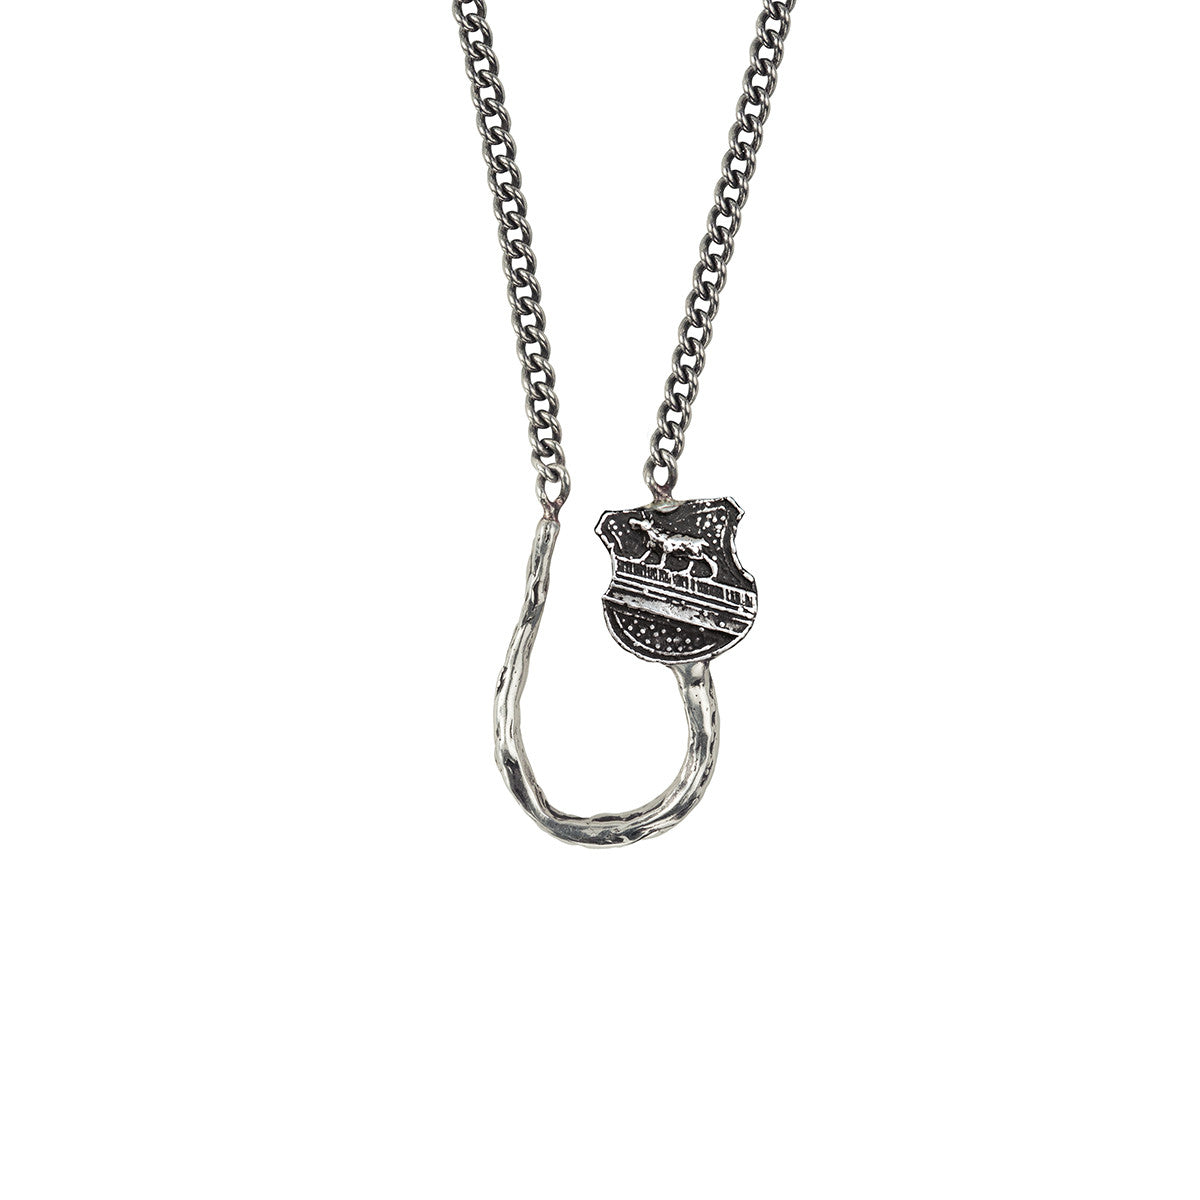 Heart of the wolf charm holder necklace pyrrha heart of the wolf charm holder necklace pyrrha mozeypictures Gallery